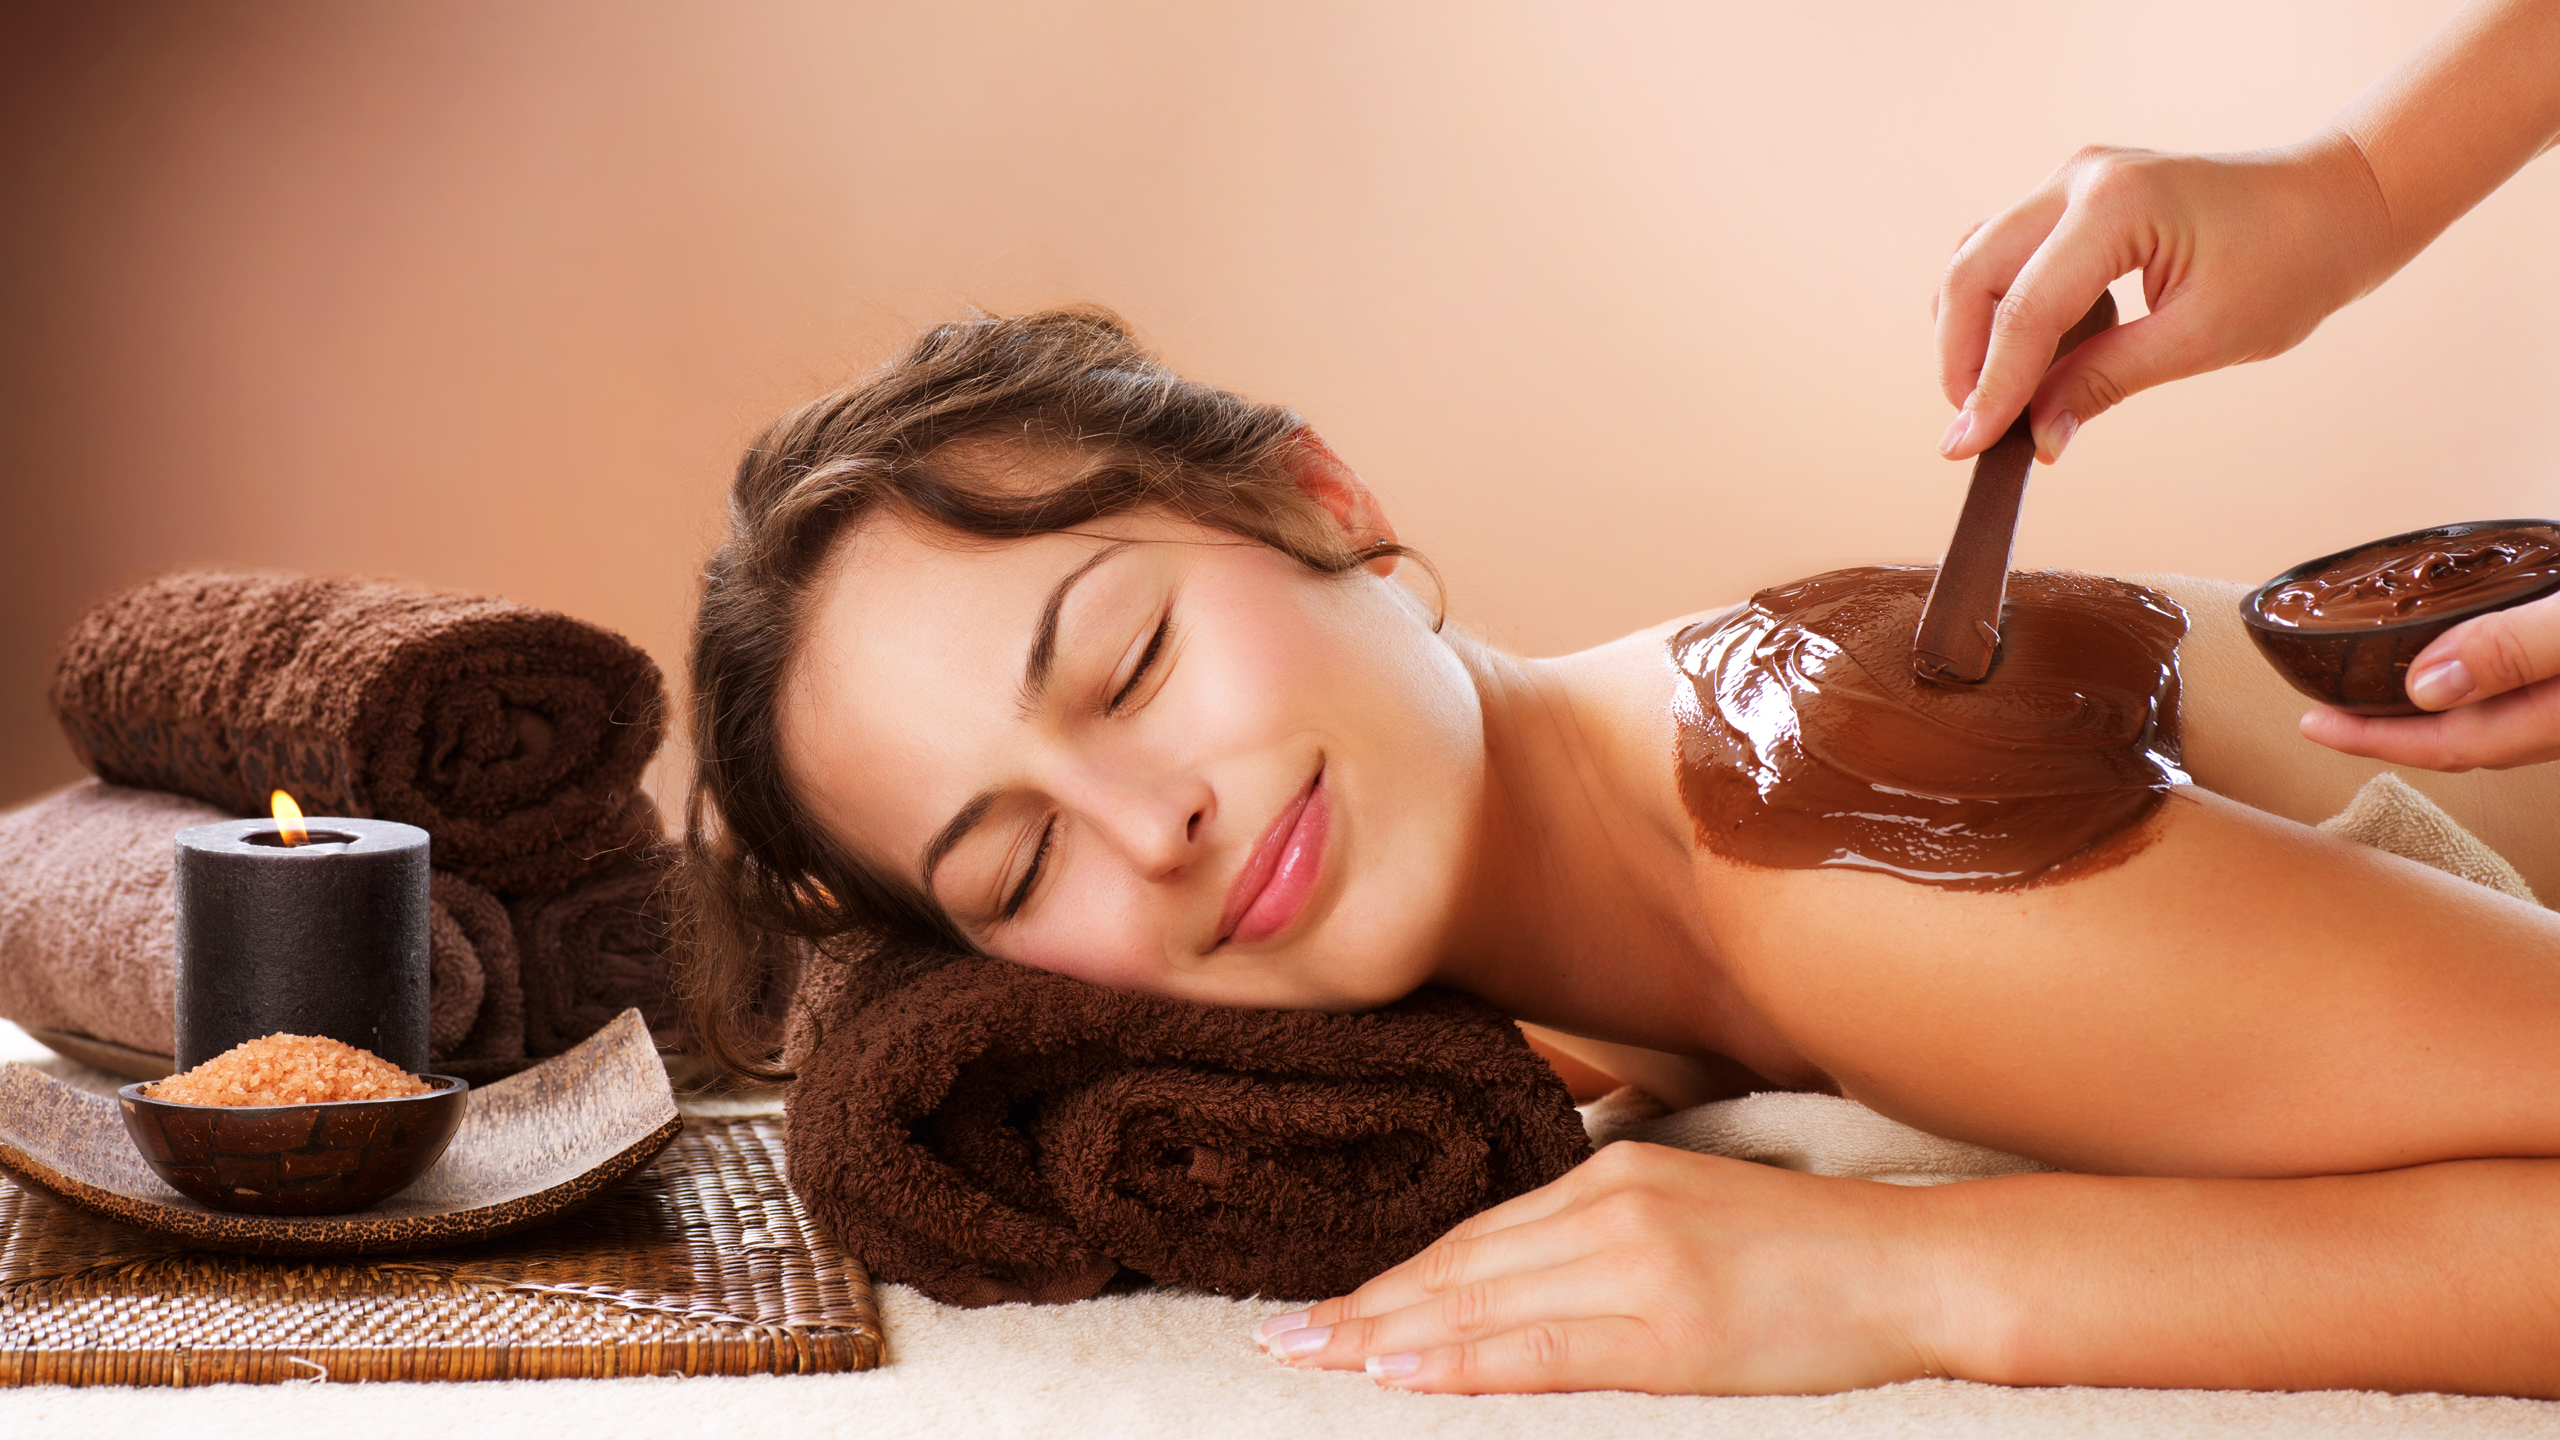 Chocolate spa hd pictures Only hd wallpapers 2560x1440